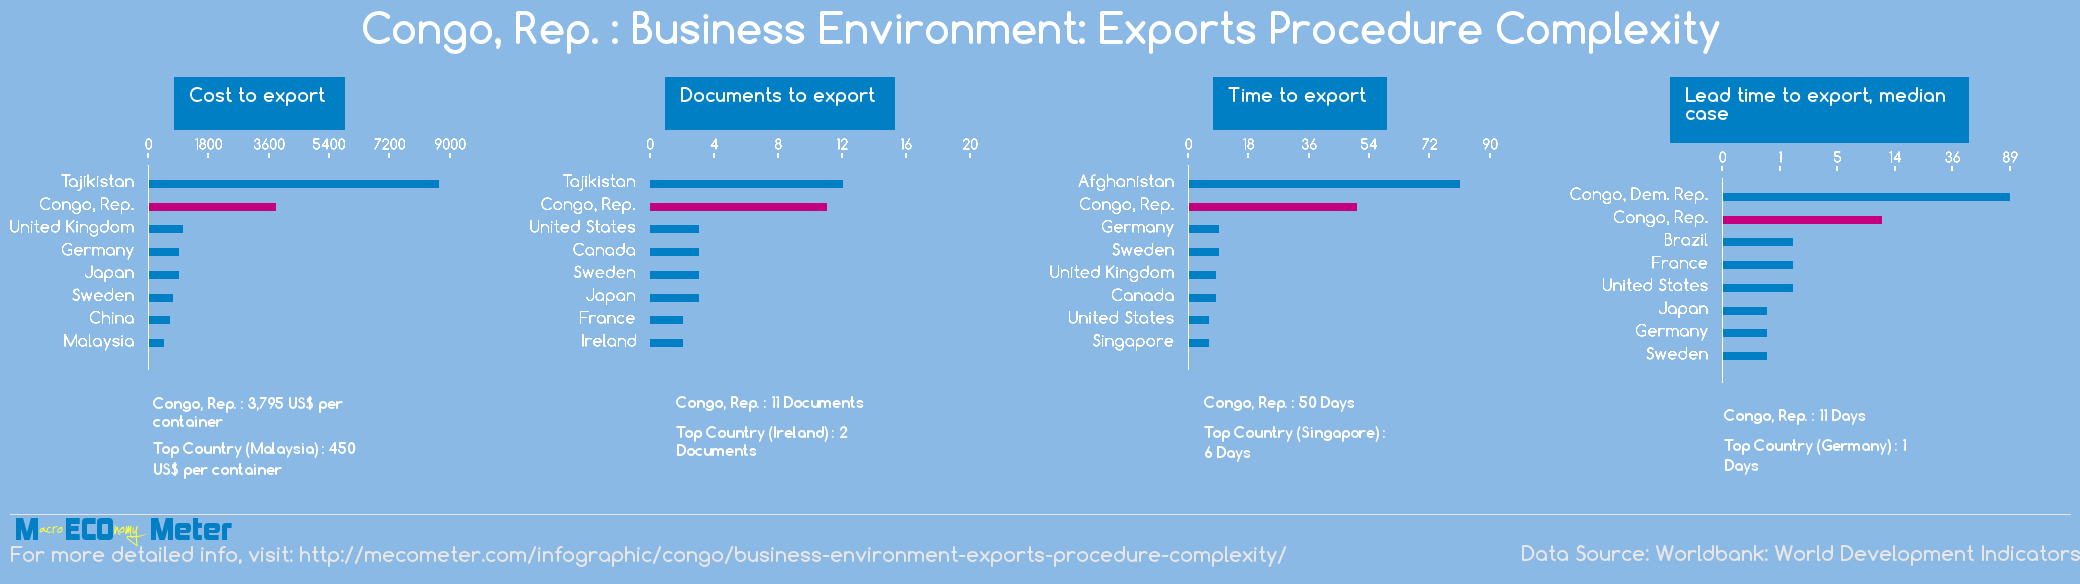 Congo, Rep. : Business Environment: Exports Procedure Complexity